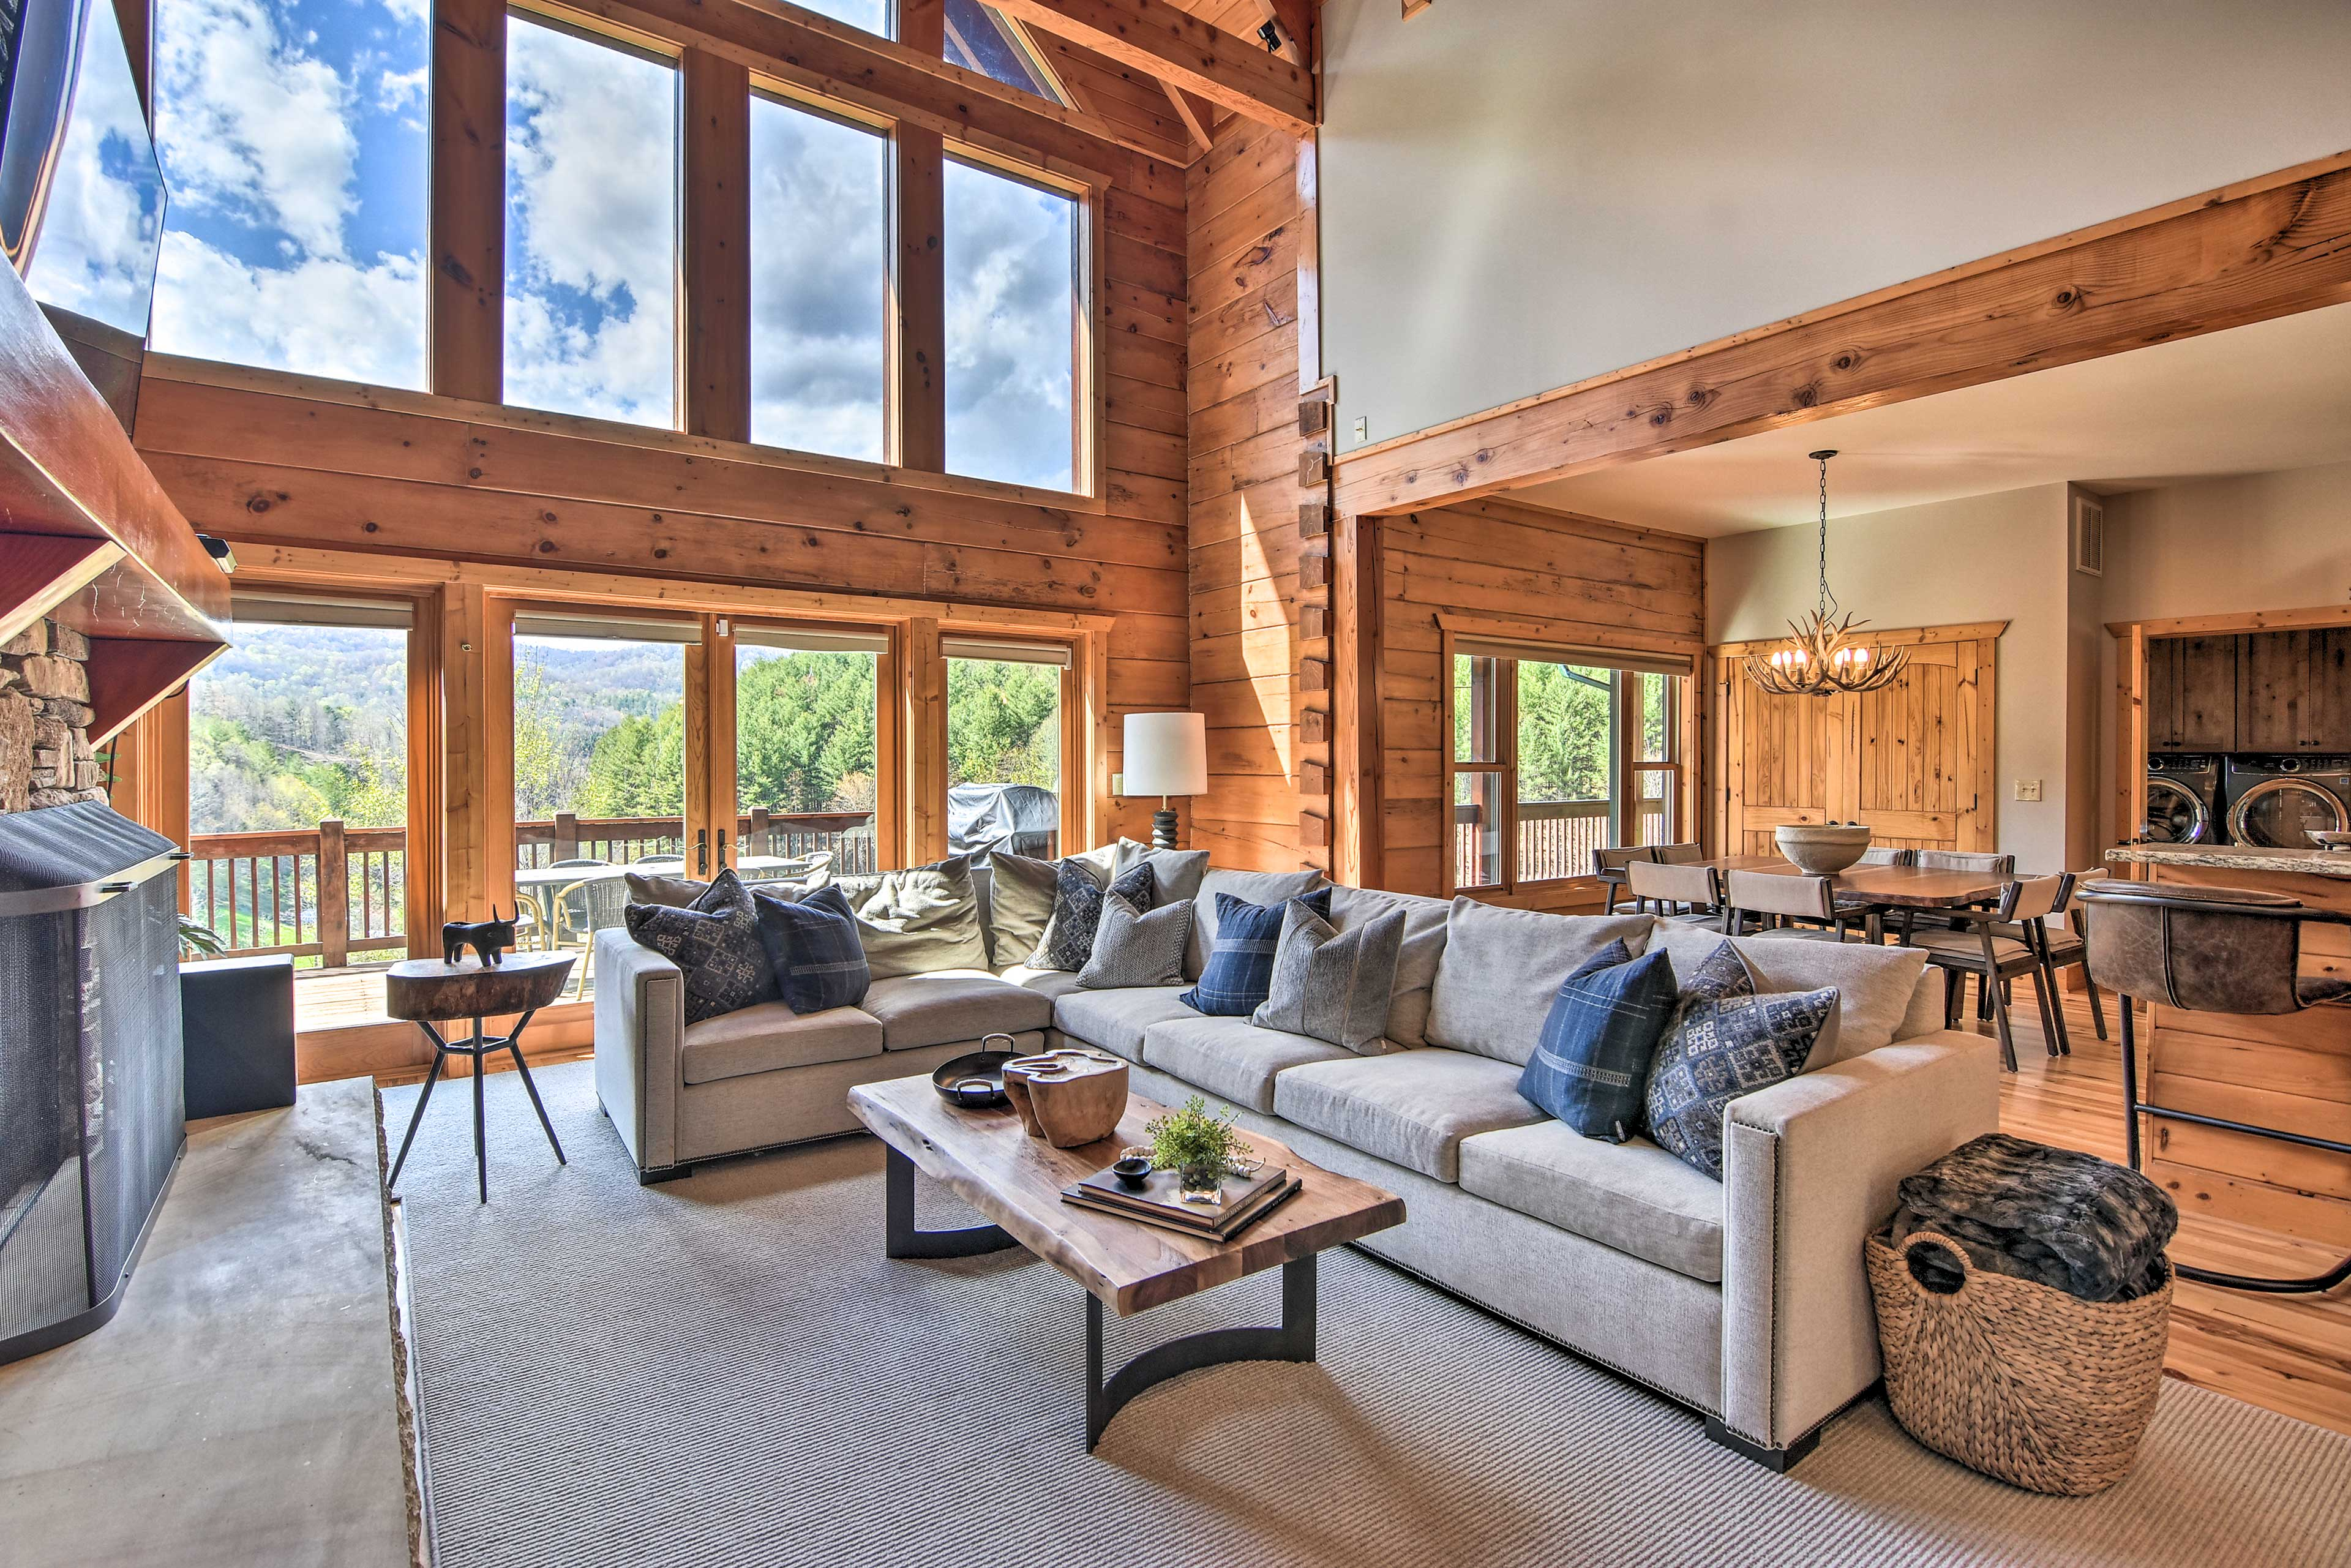 Bask in beautiful views from inside & out of this Banner Elk home!